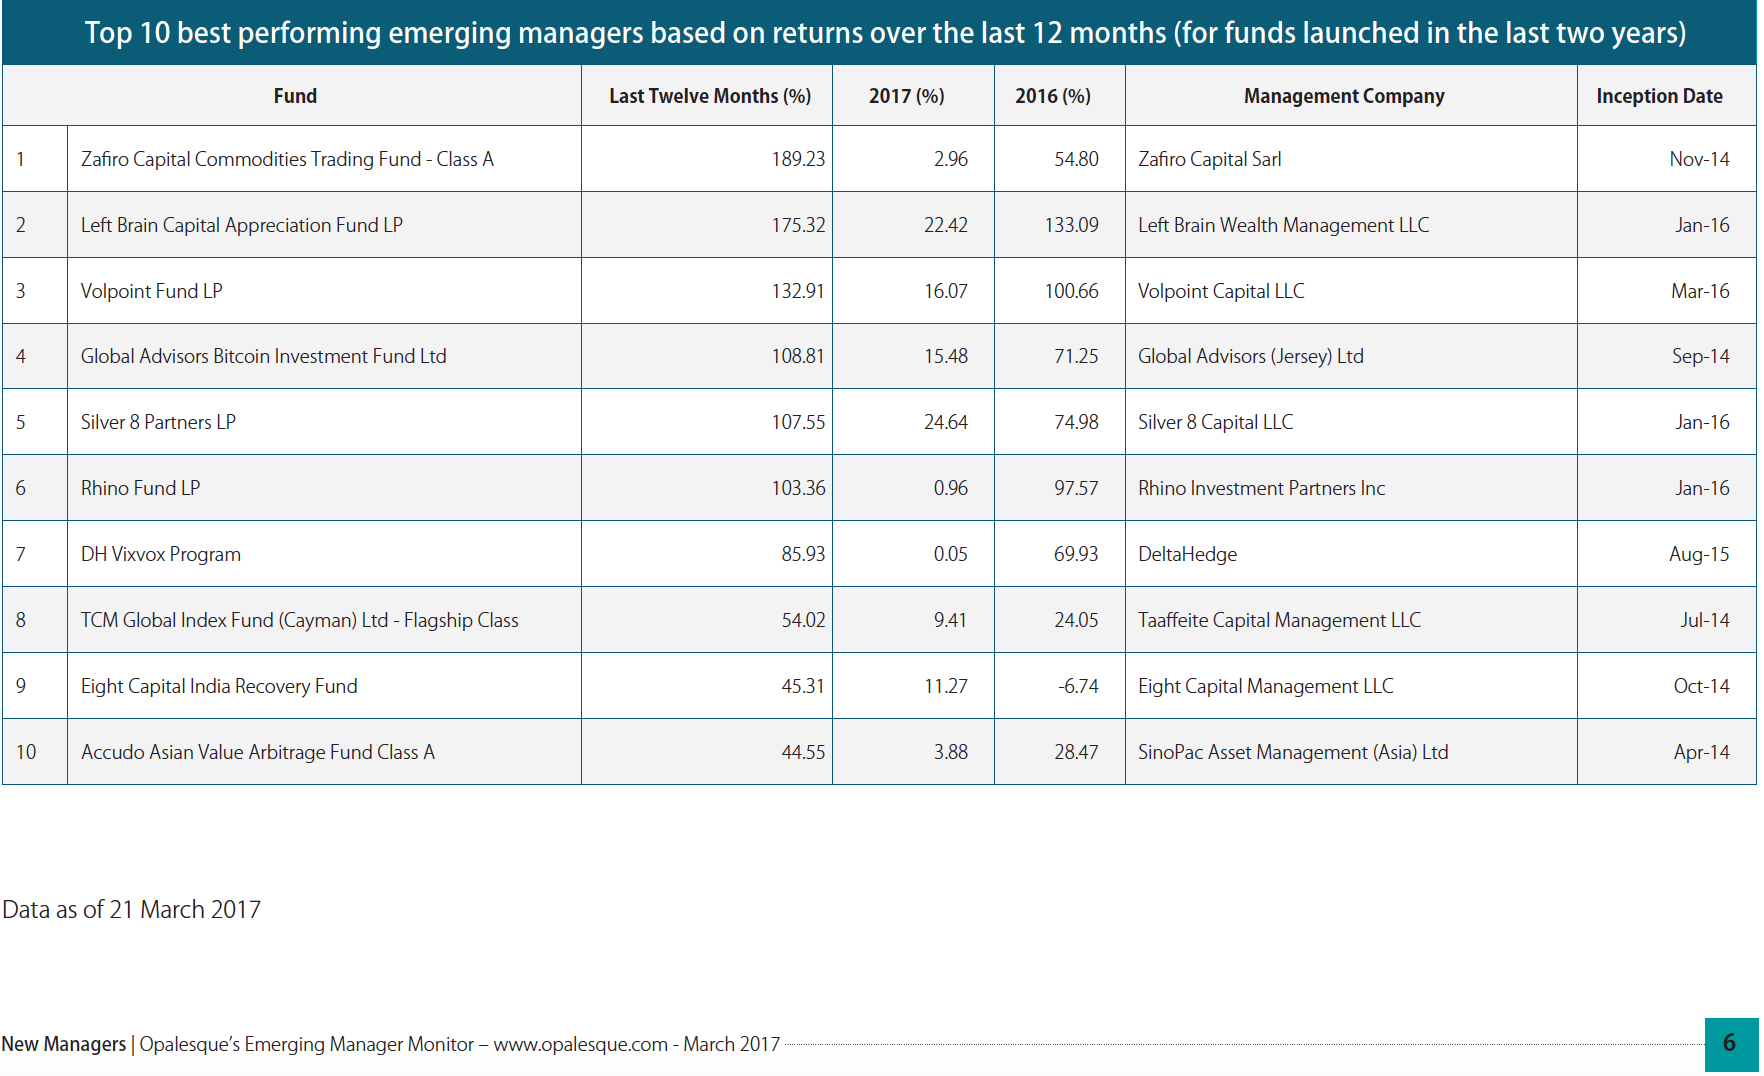 List of Top 10 best performing emerging hedge fund managers based